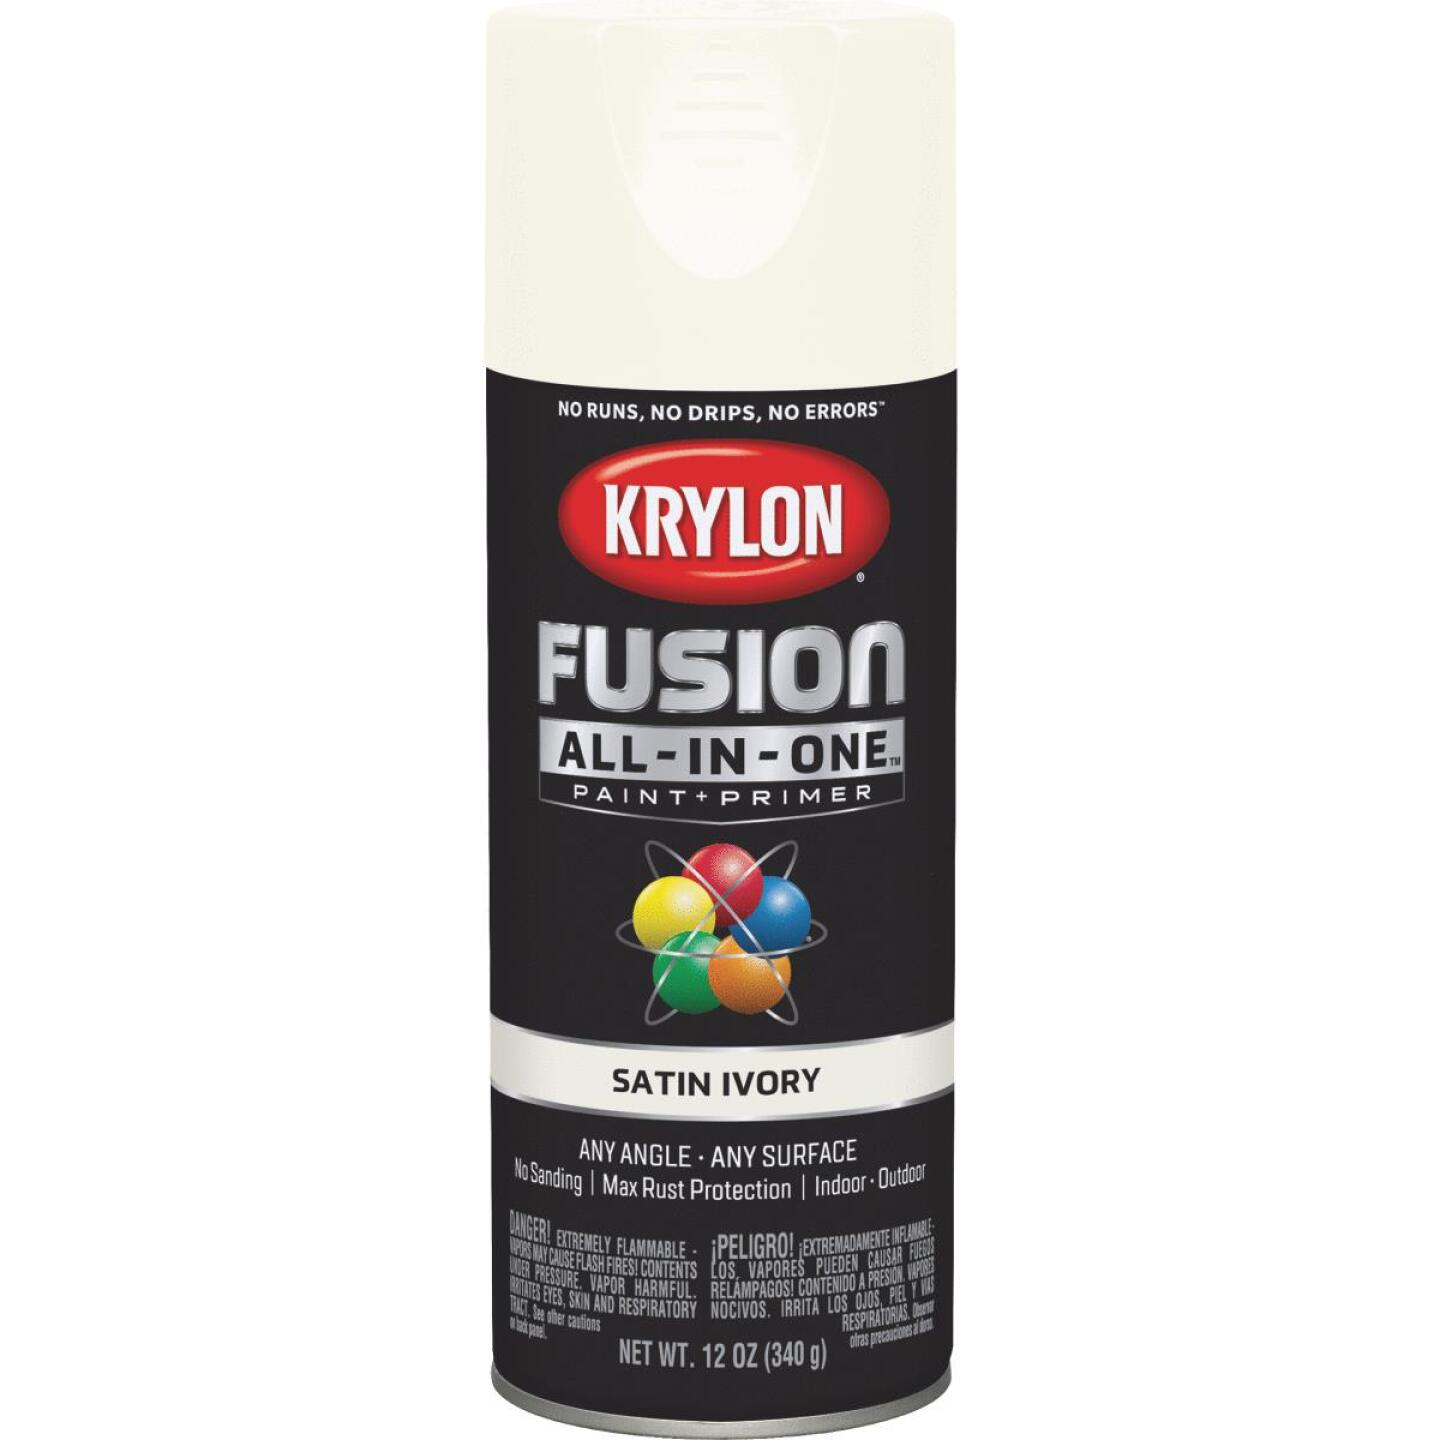 Krylon Fusion All-In-One Satin Spray Paint & Primer, Ivory Image 1